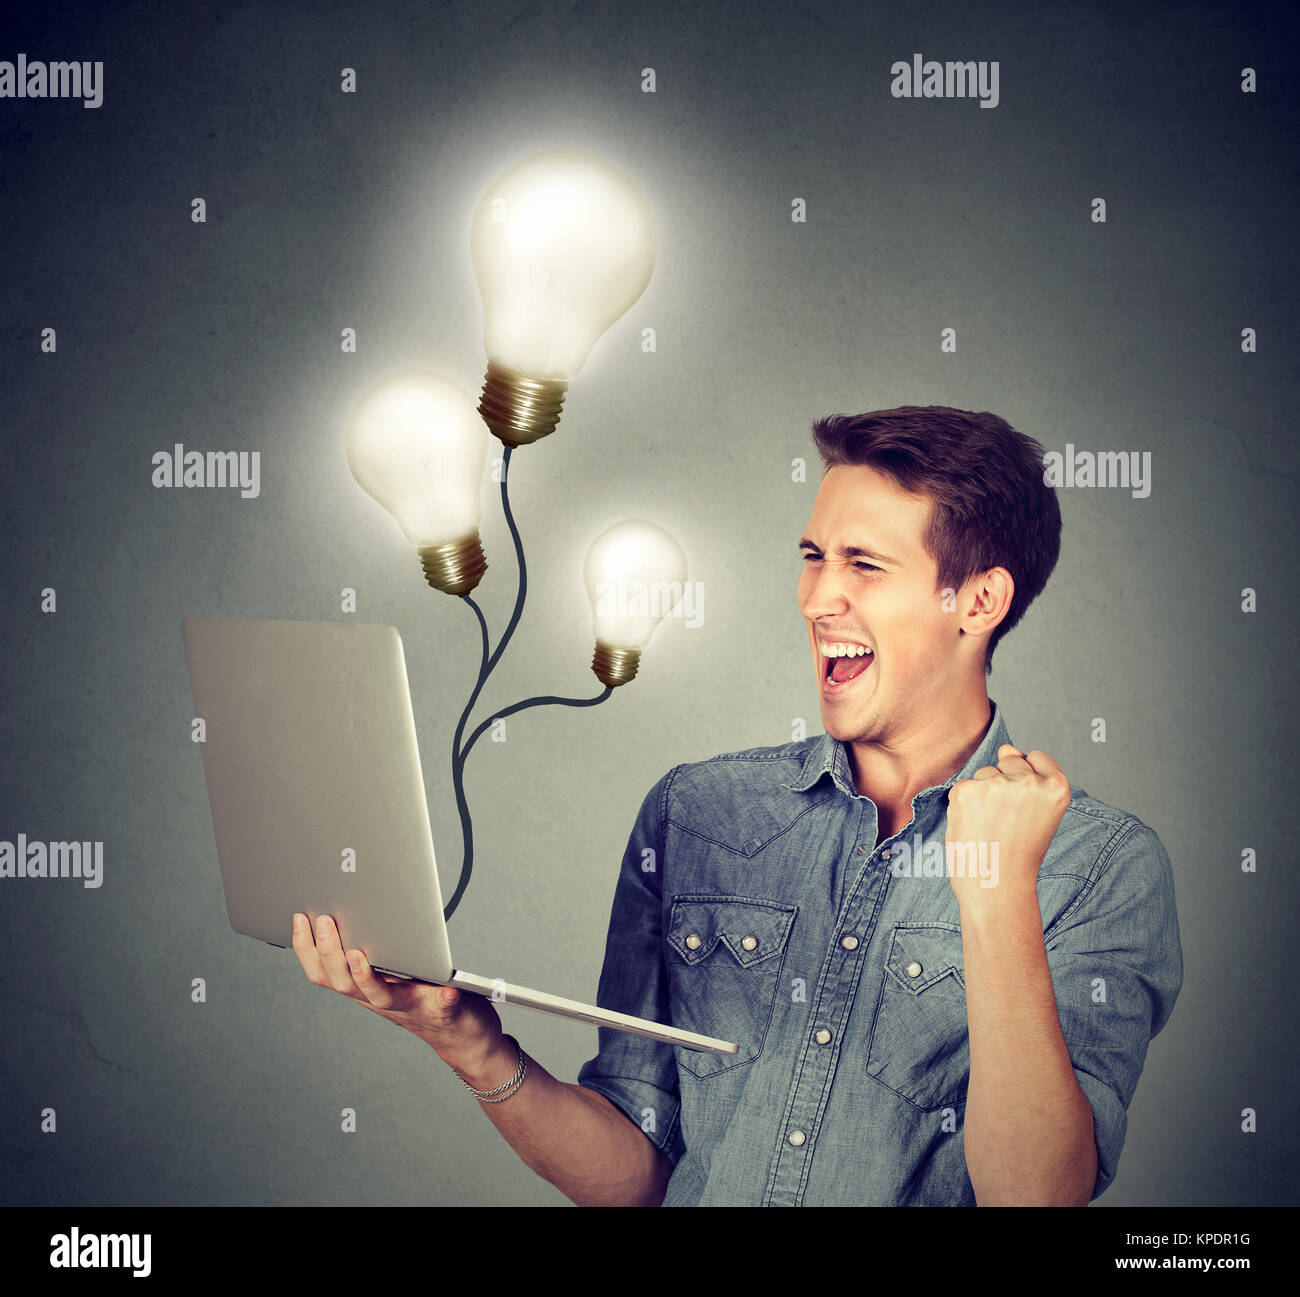 Young man holding laptop and celebrating success of great ideas. - Stock Image